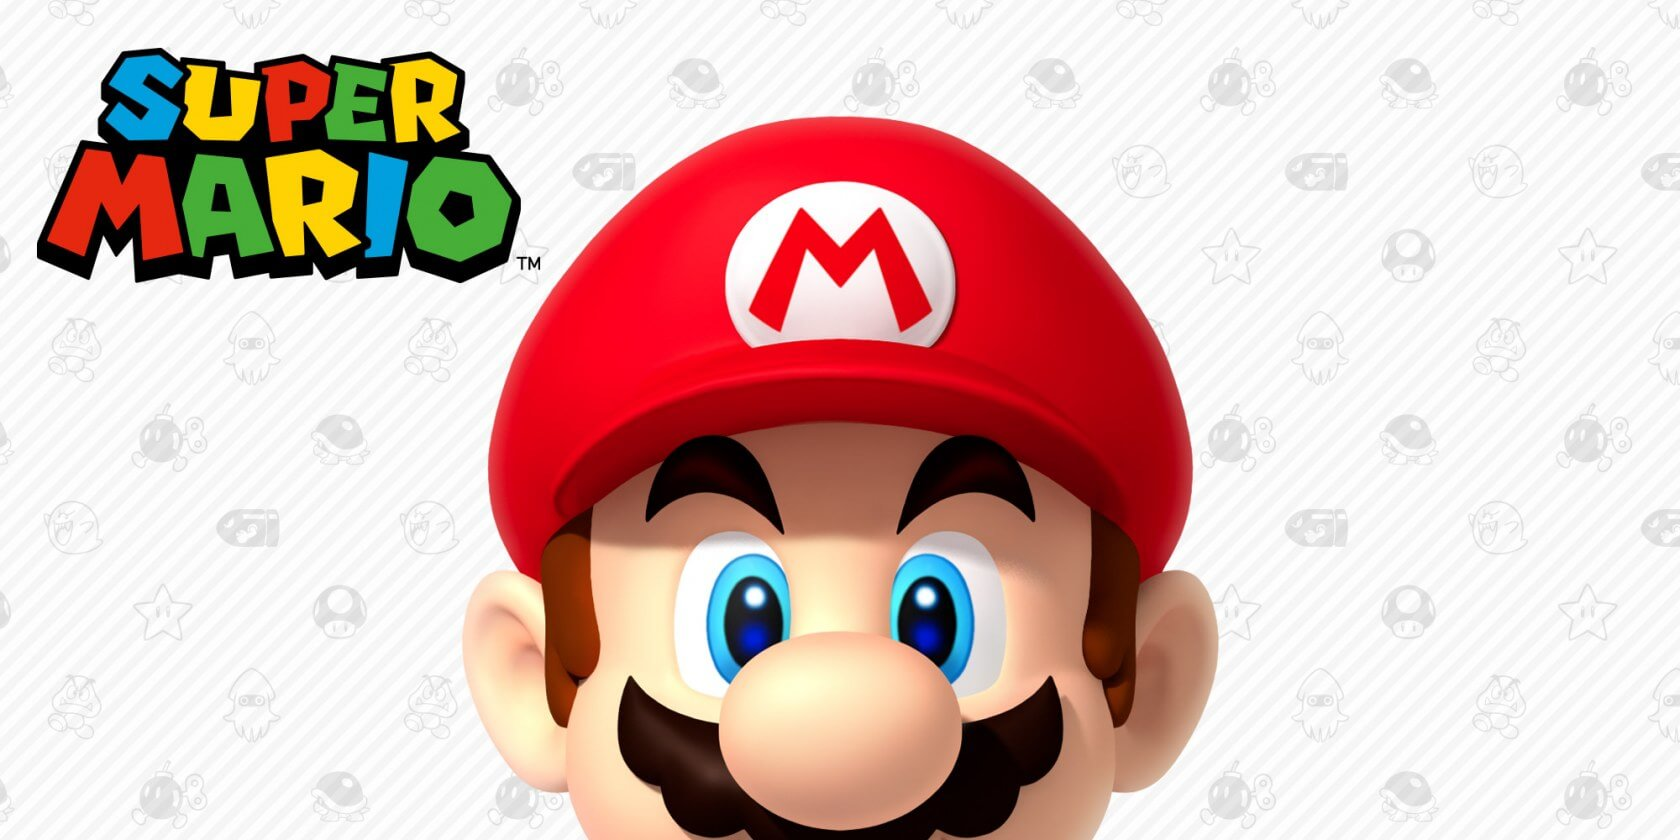 a super mario bros animated film adaptation is expected to release